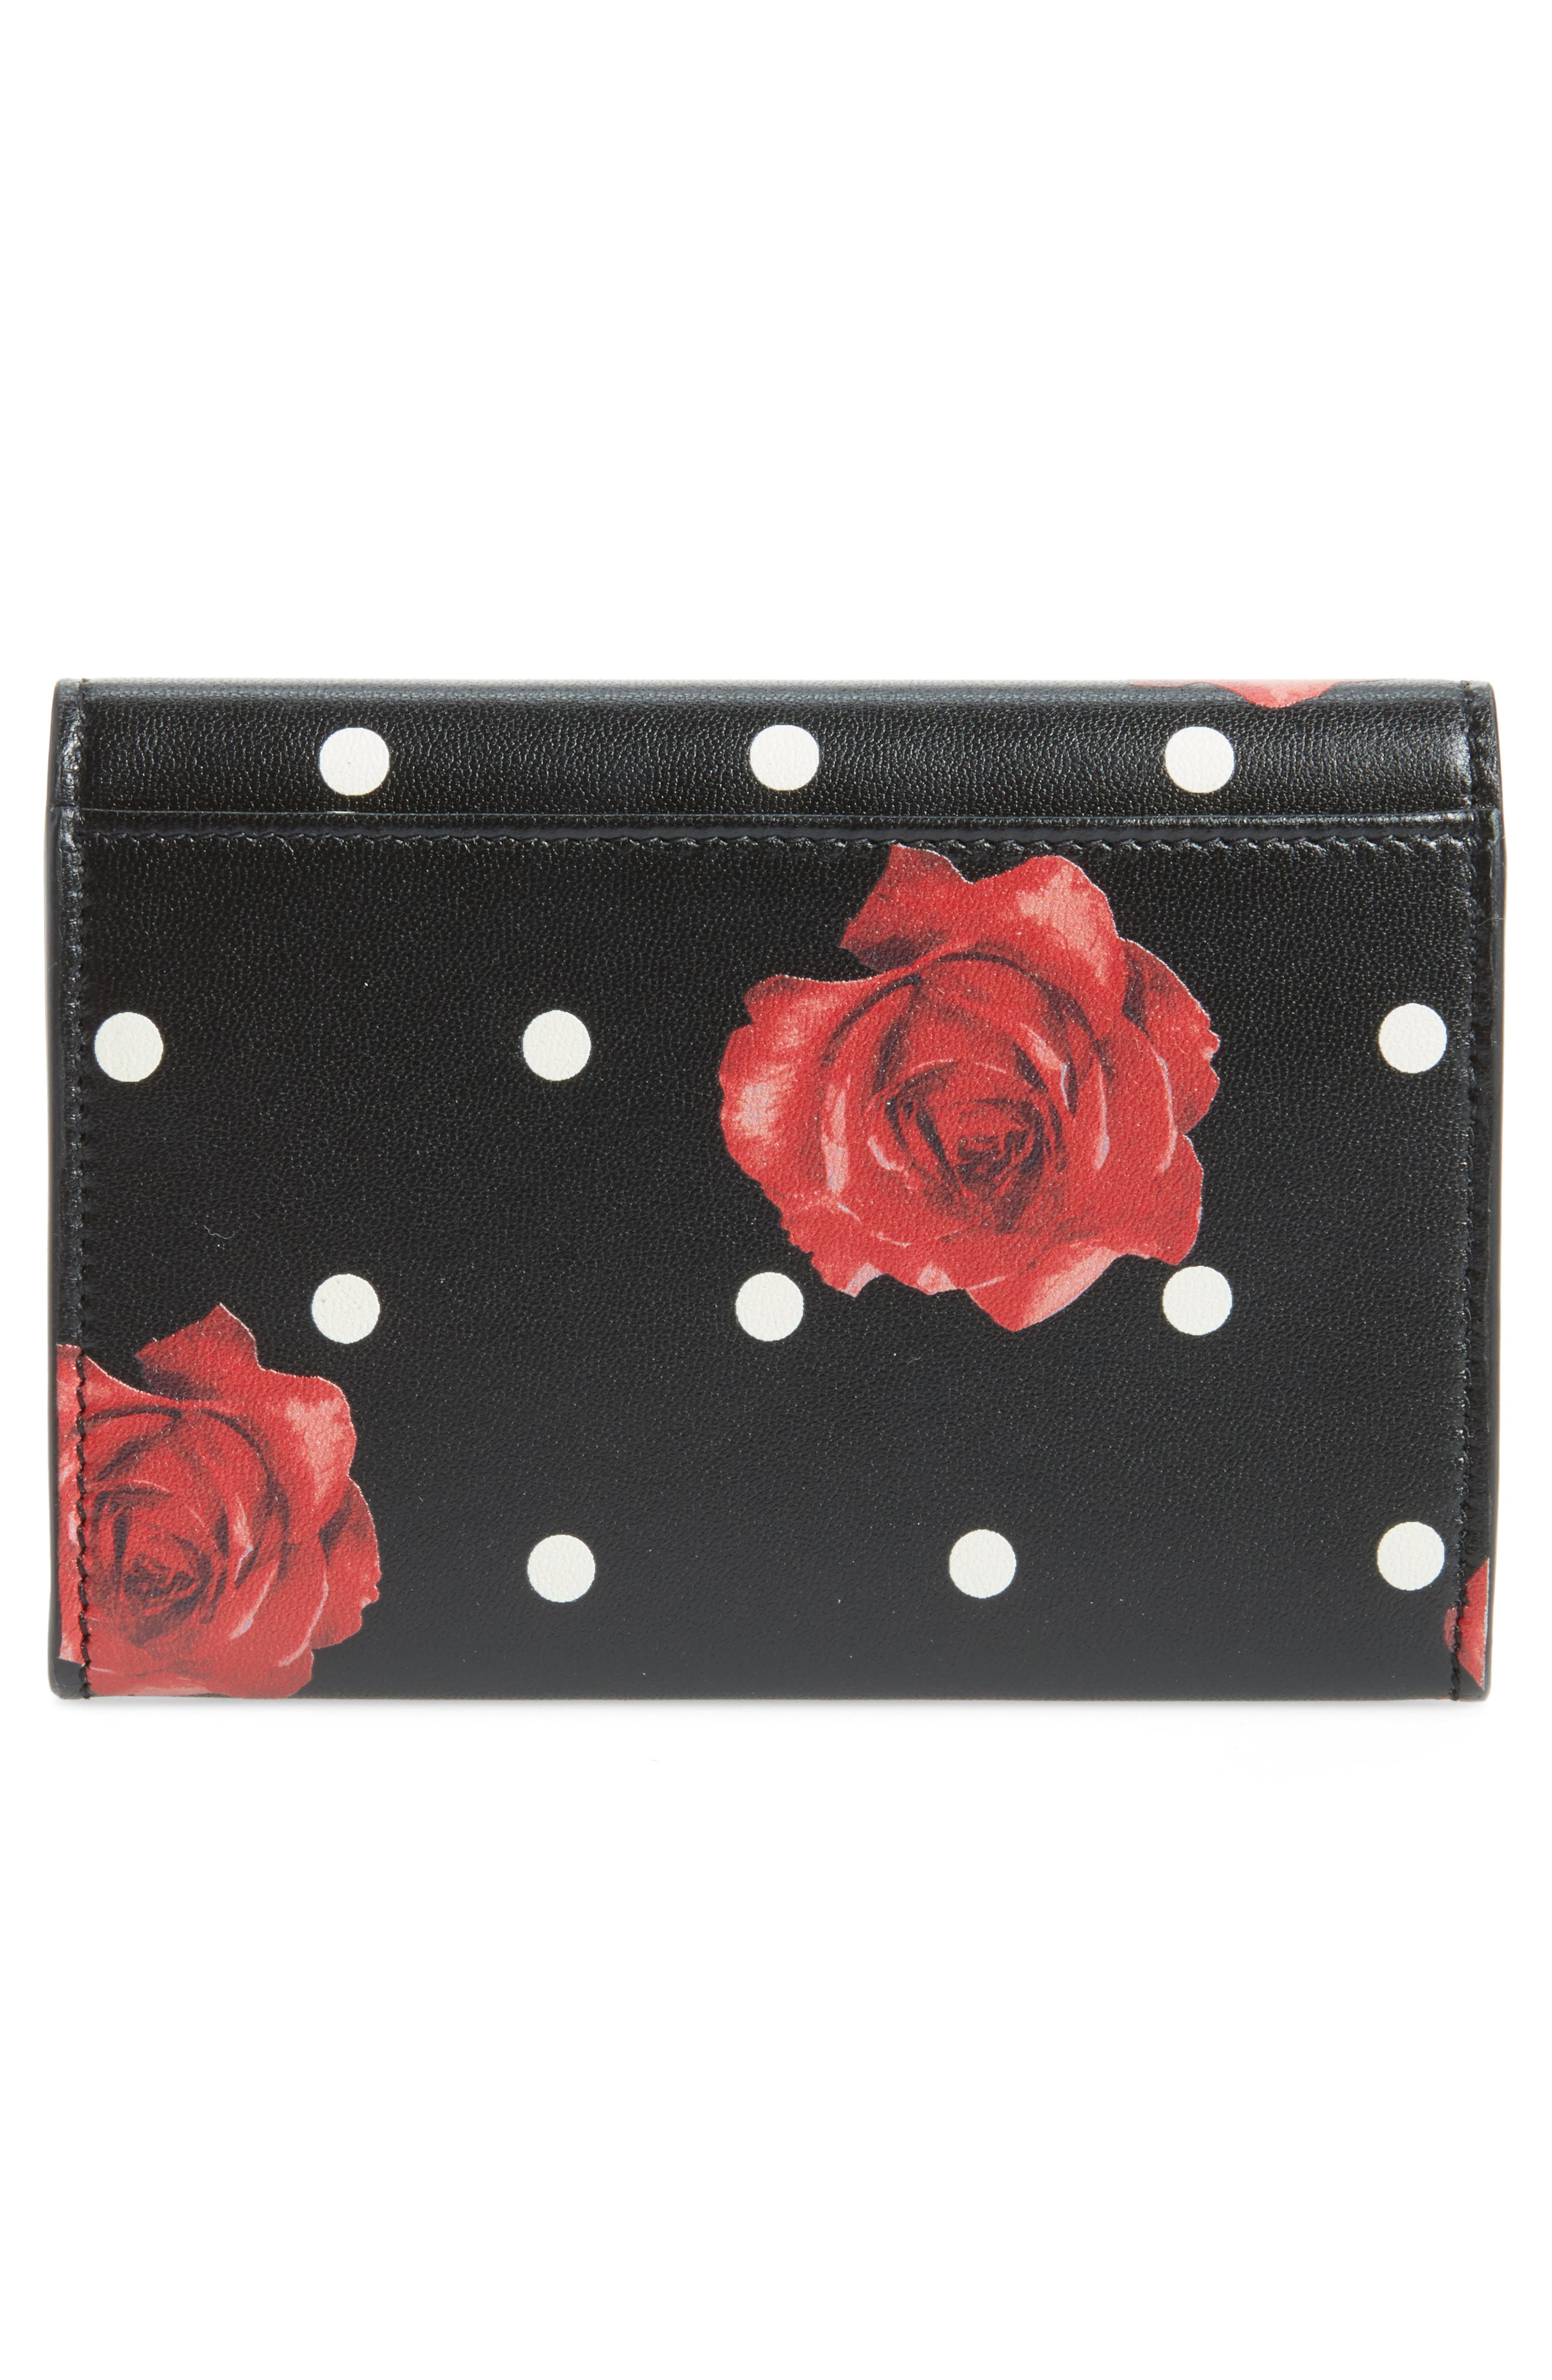 Rose & Polka Dot Small Leather French Wallet,                             Alternate thumbnail 4, color,                             001